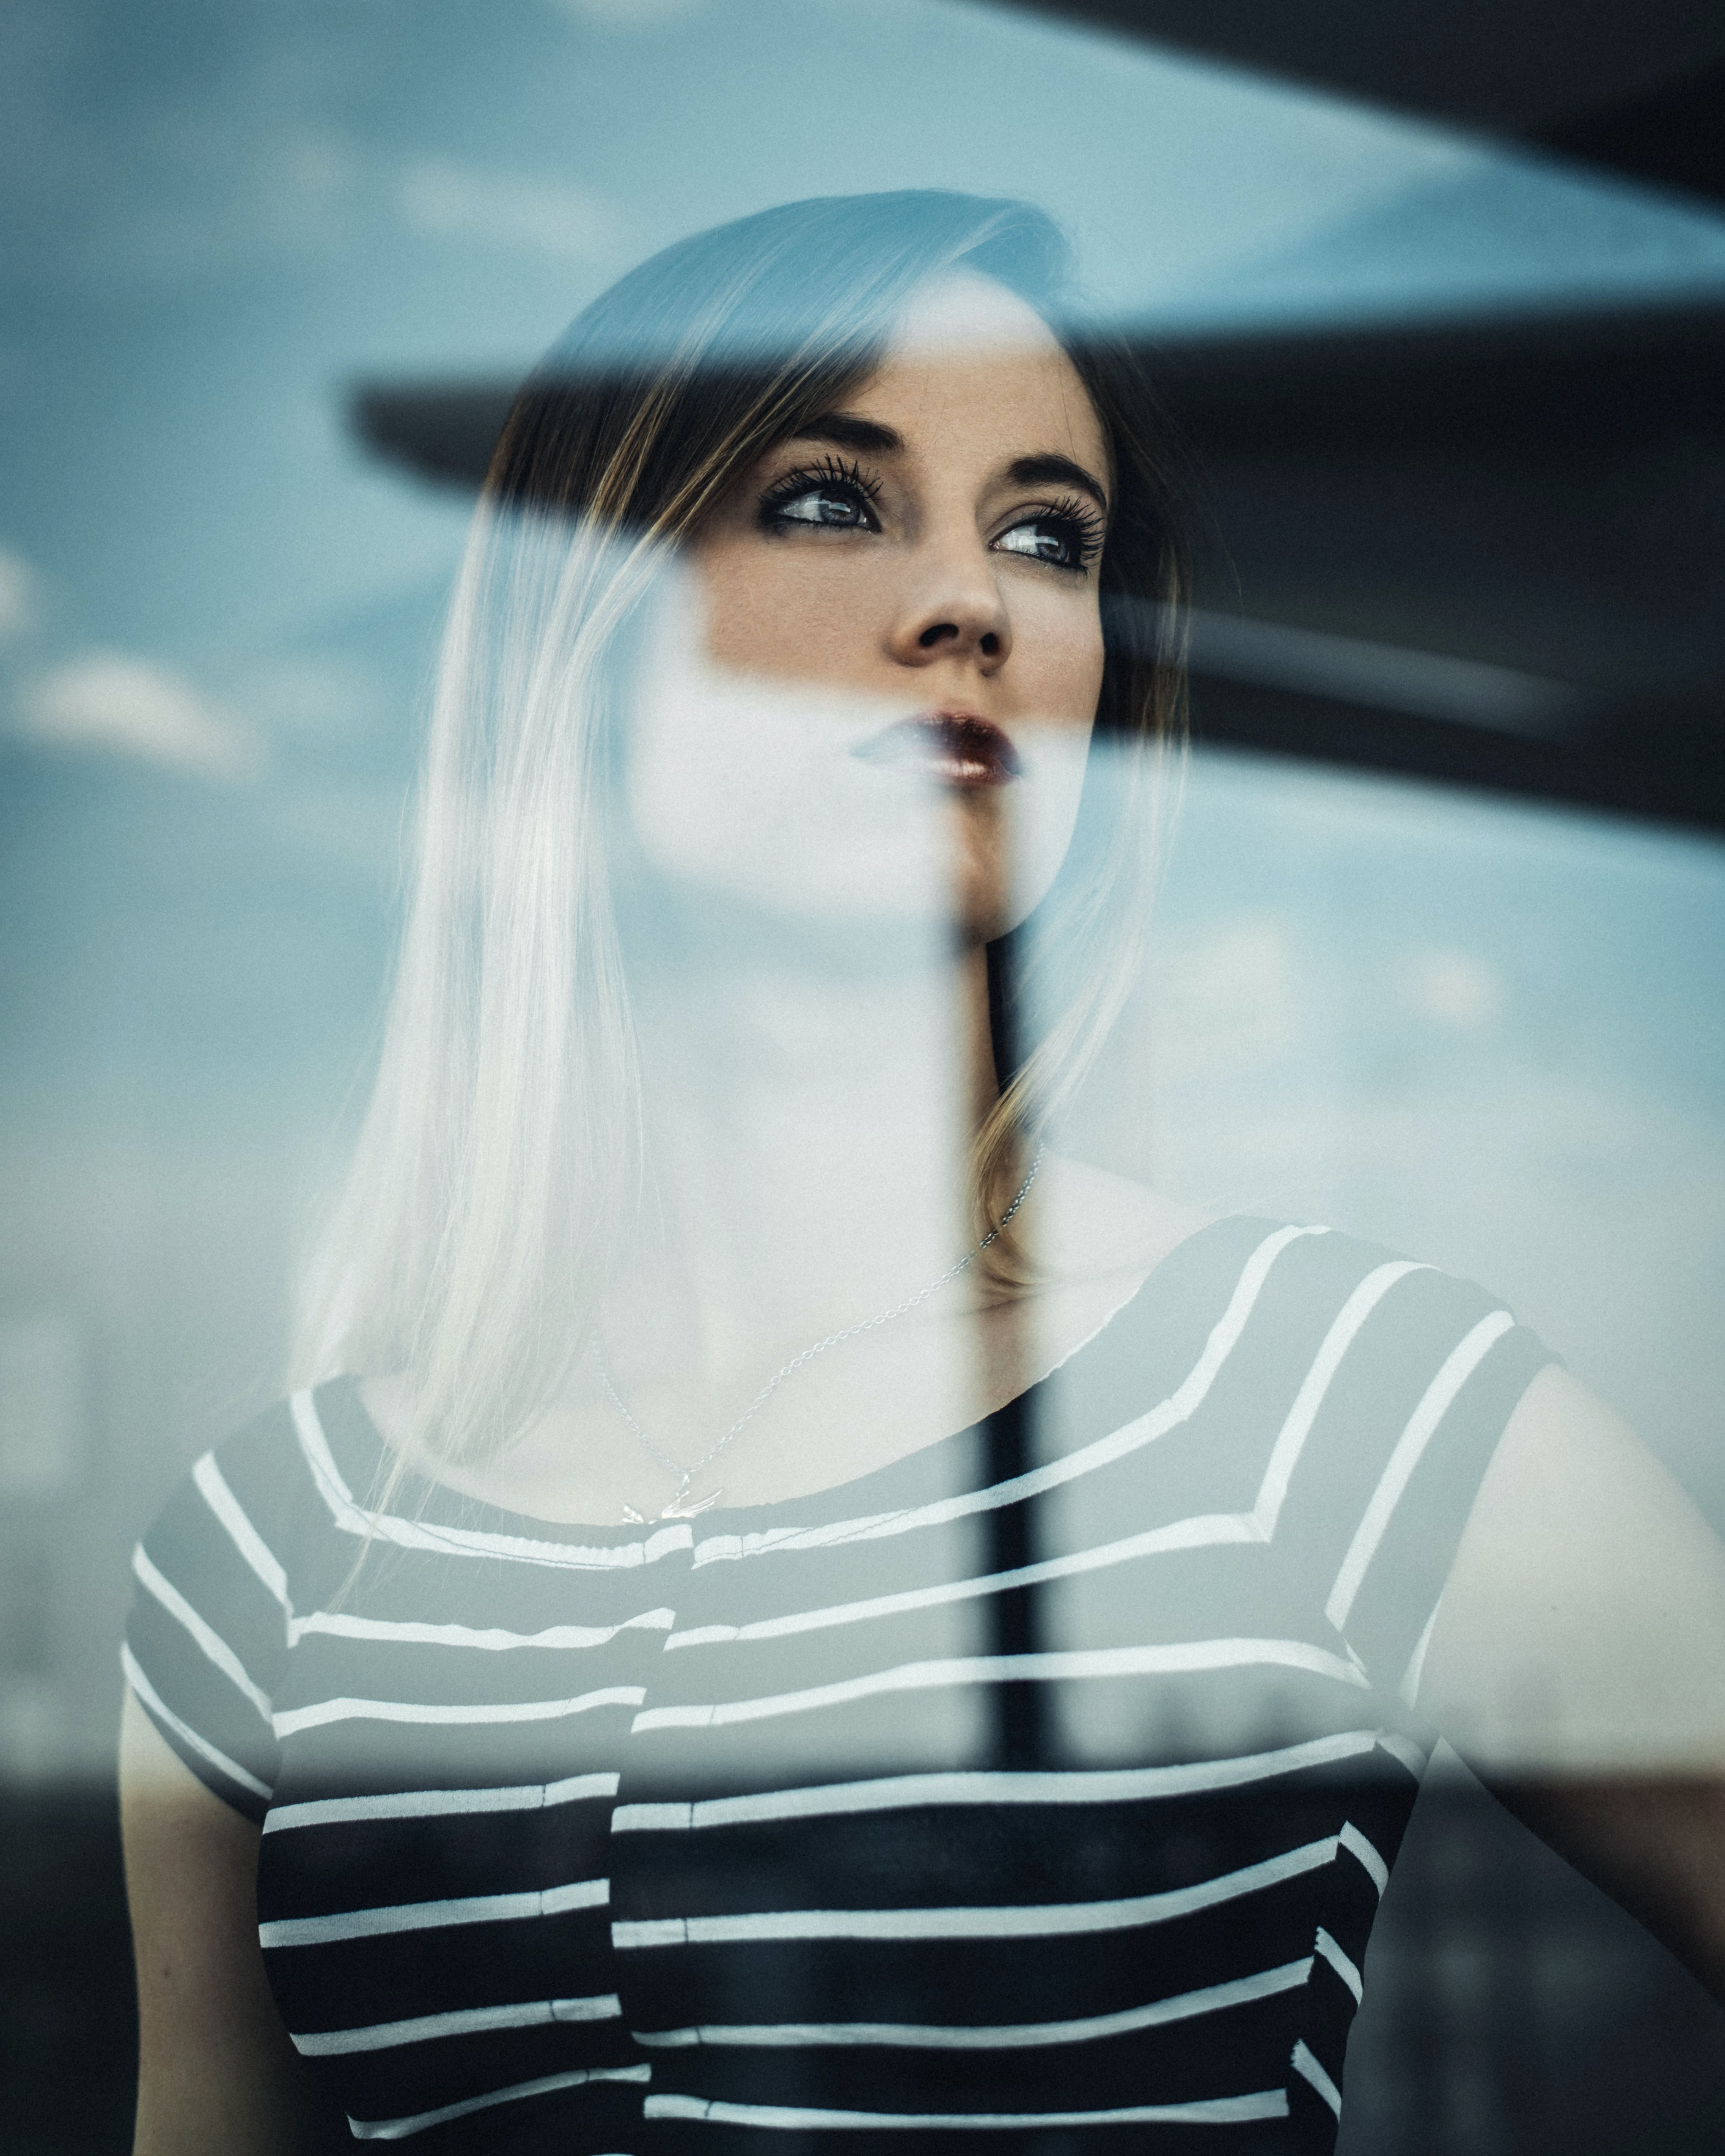 Woman Wearing Striped Shirt